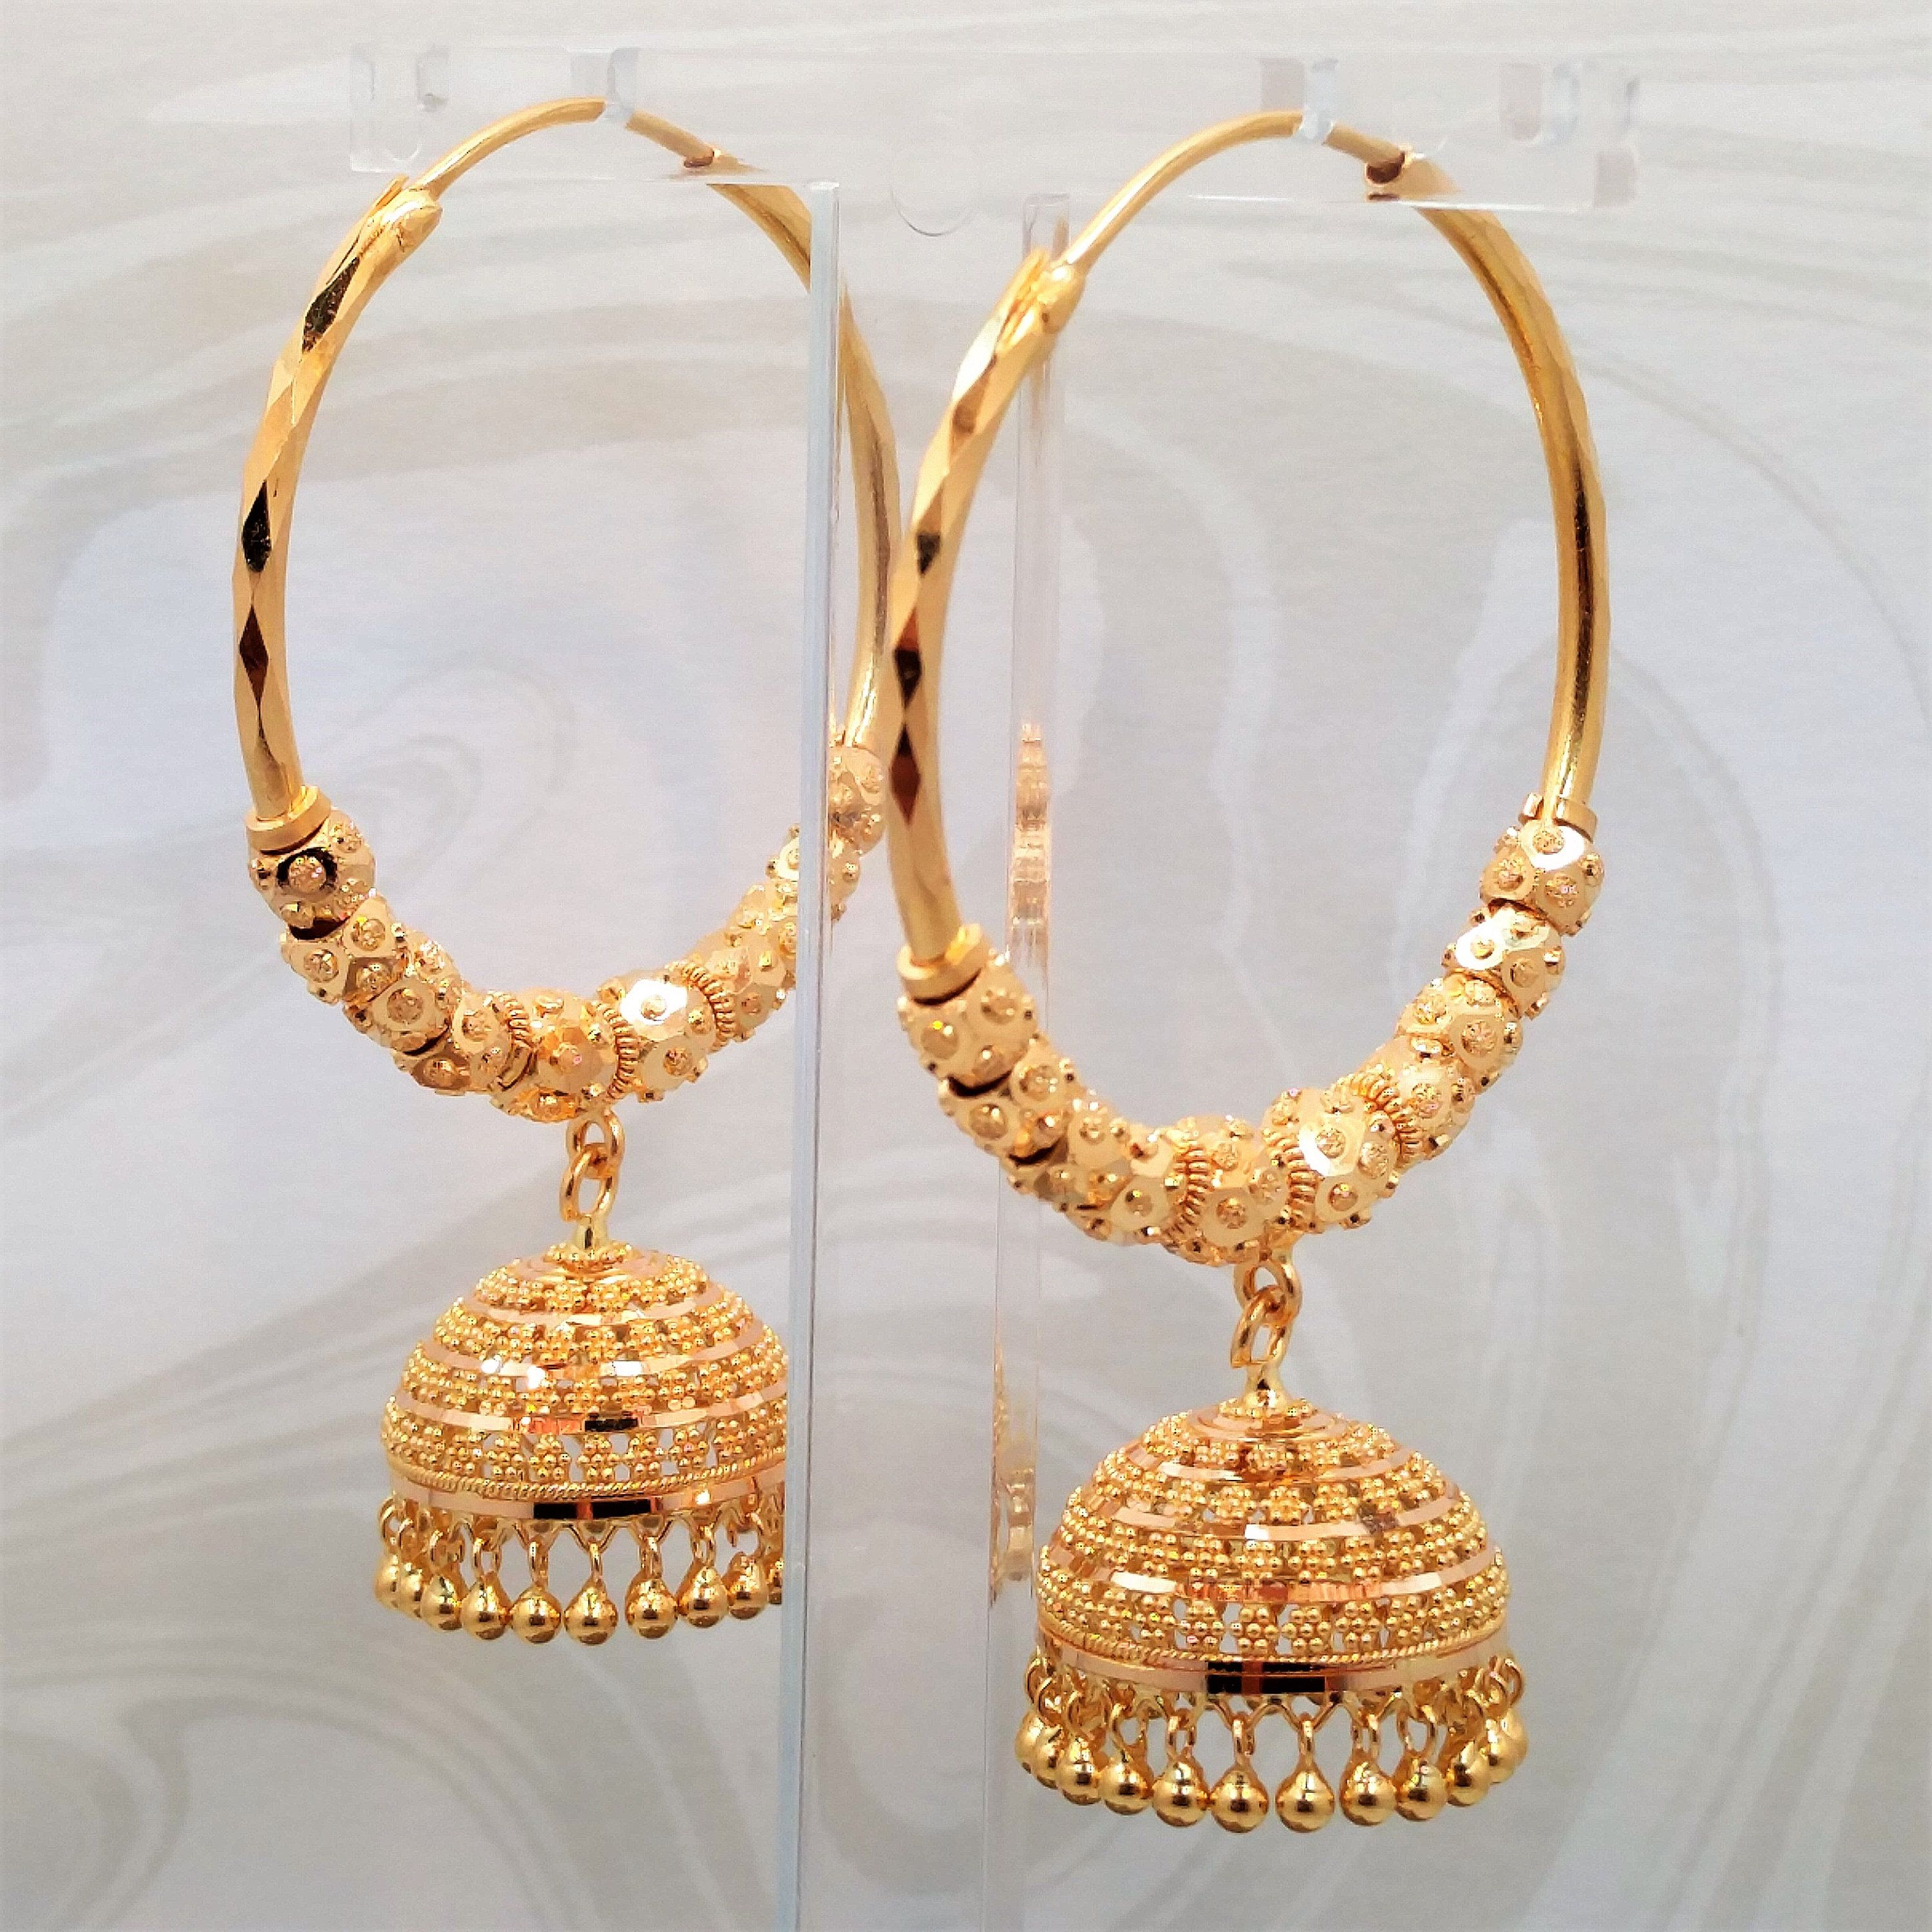 GOLDSHINE Genuine 22K Solid Yellow Gold Earrings Hoop Bali ...